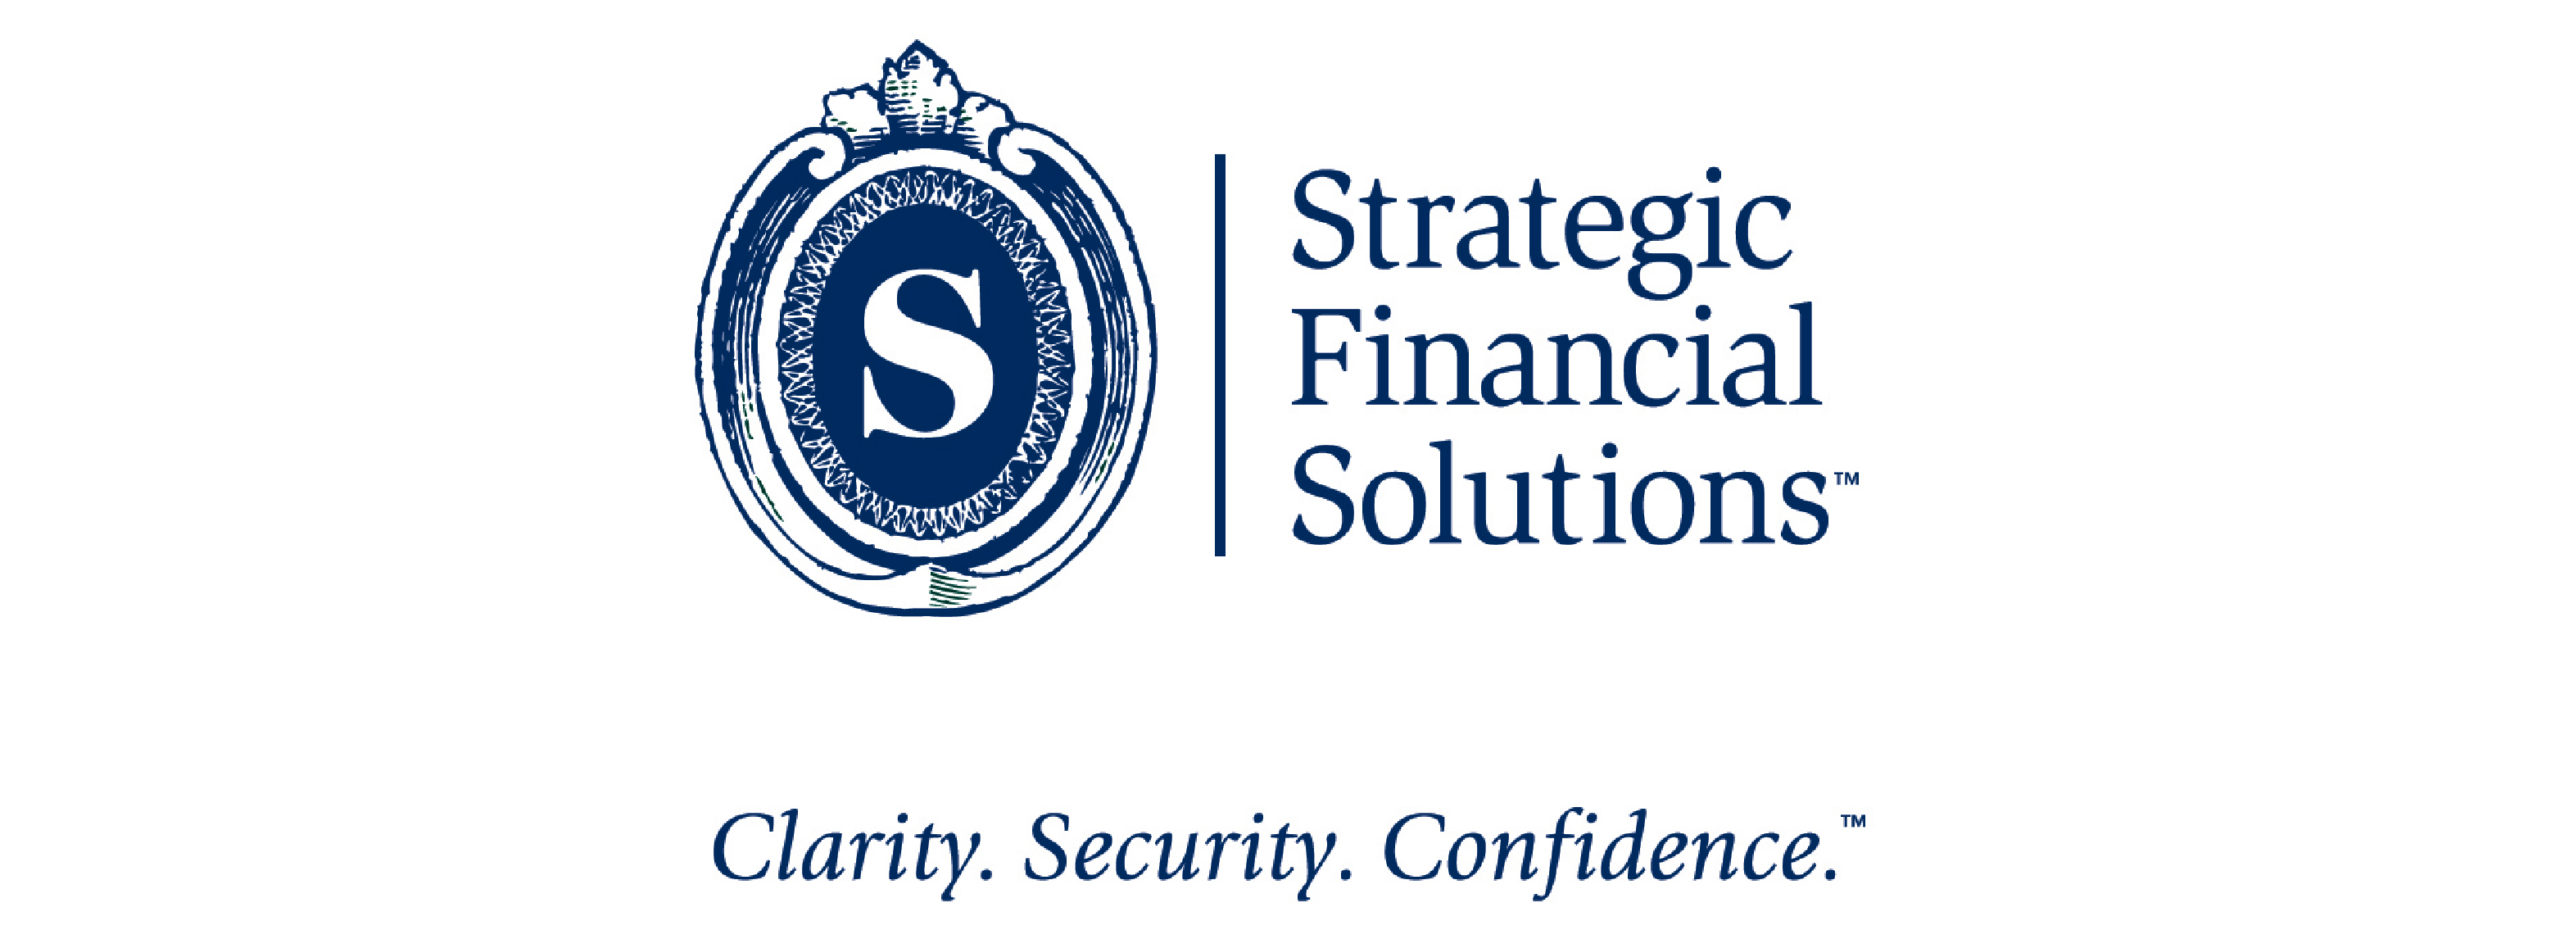 Strategic Financial Solutions logo